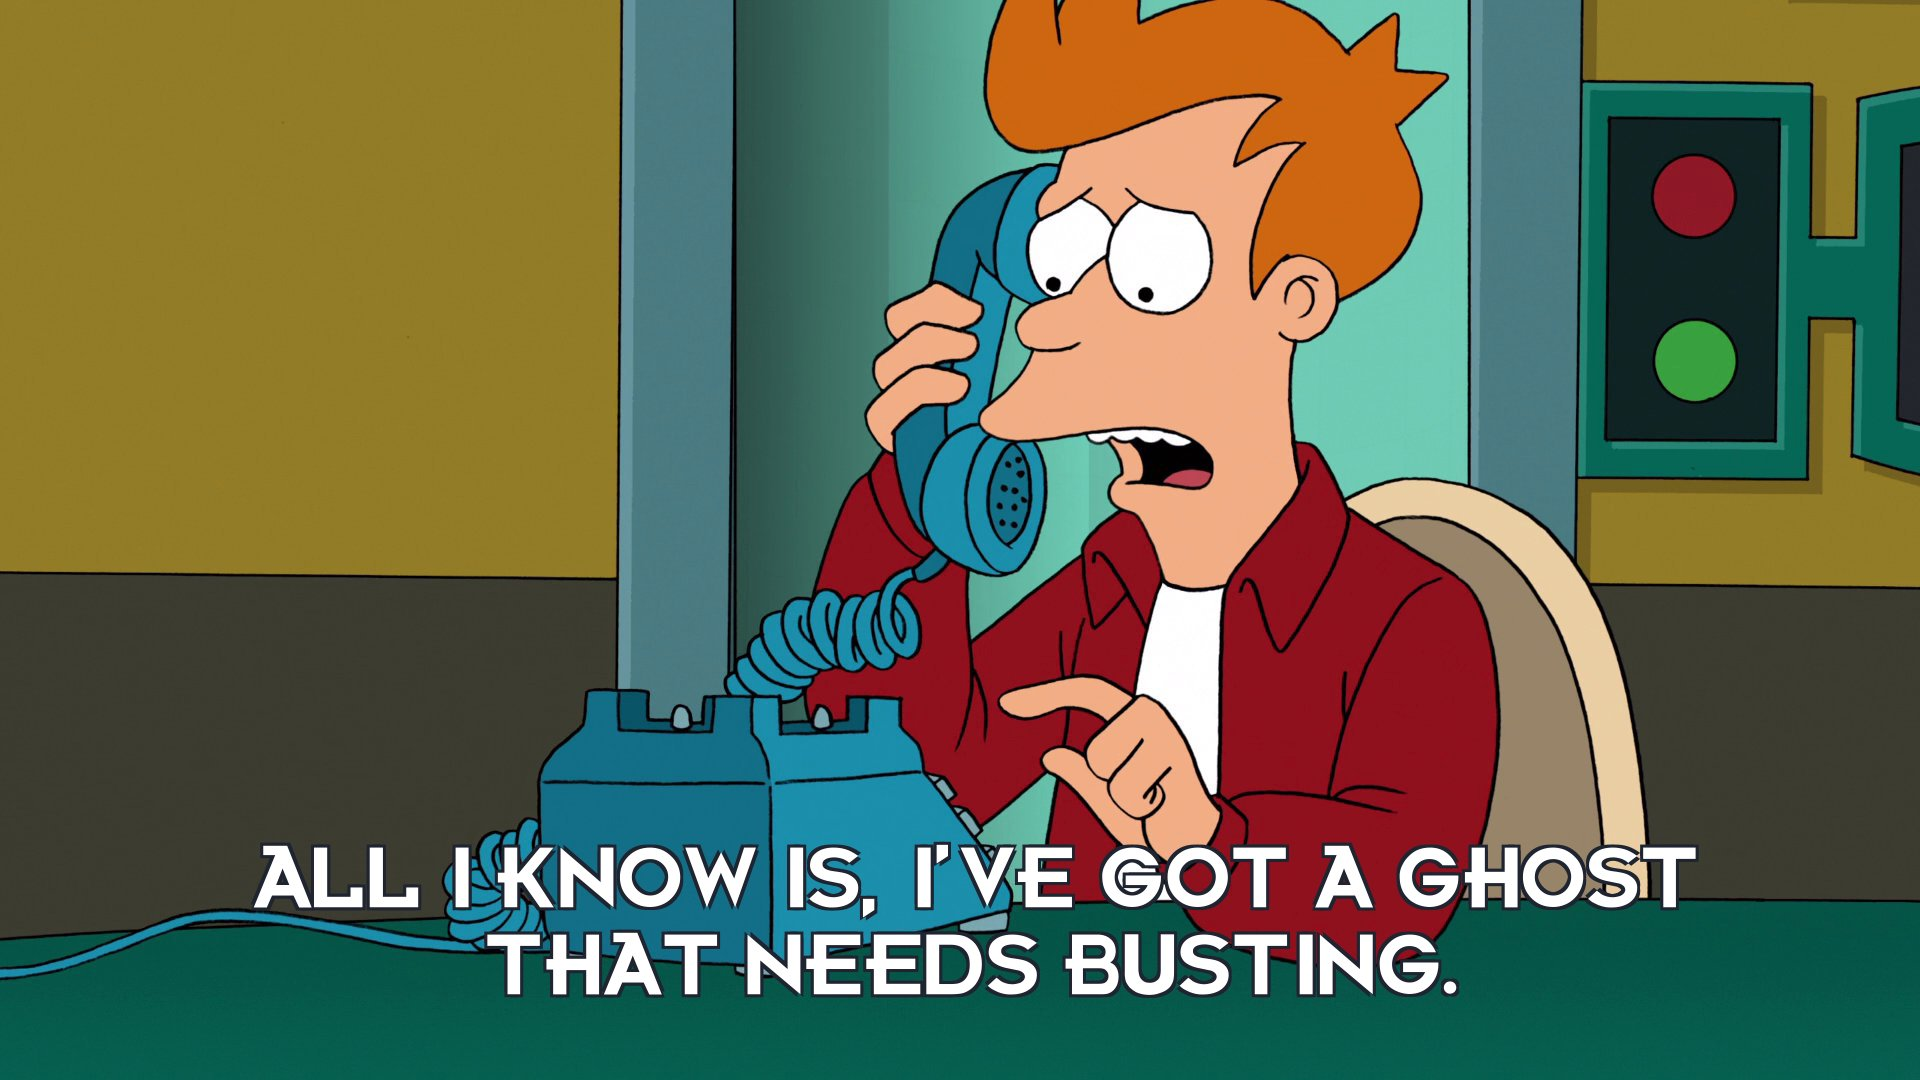 Philip J Fry: All I know is, I've got a ghost that needs busting.